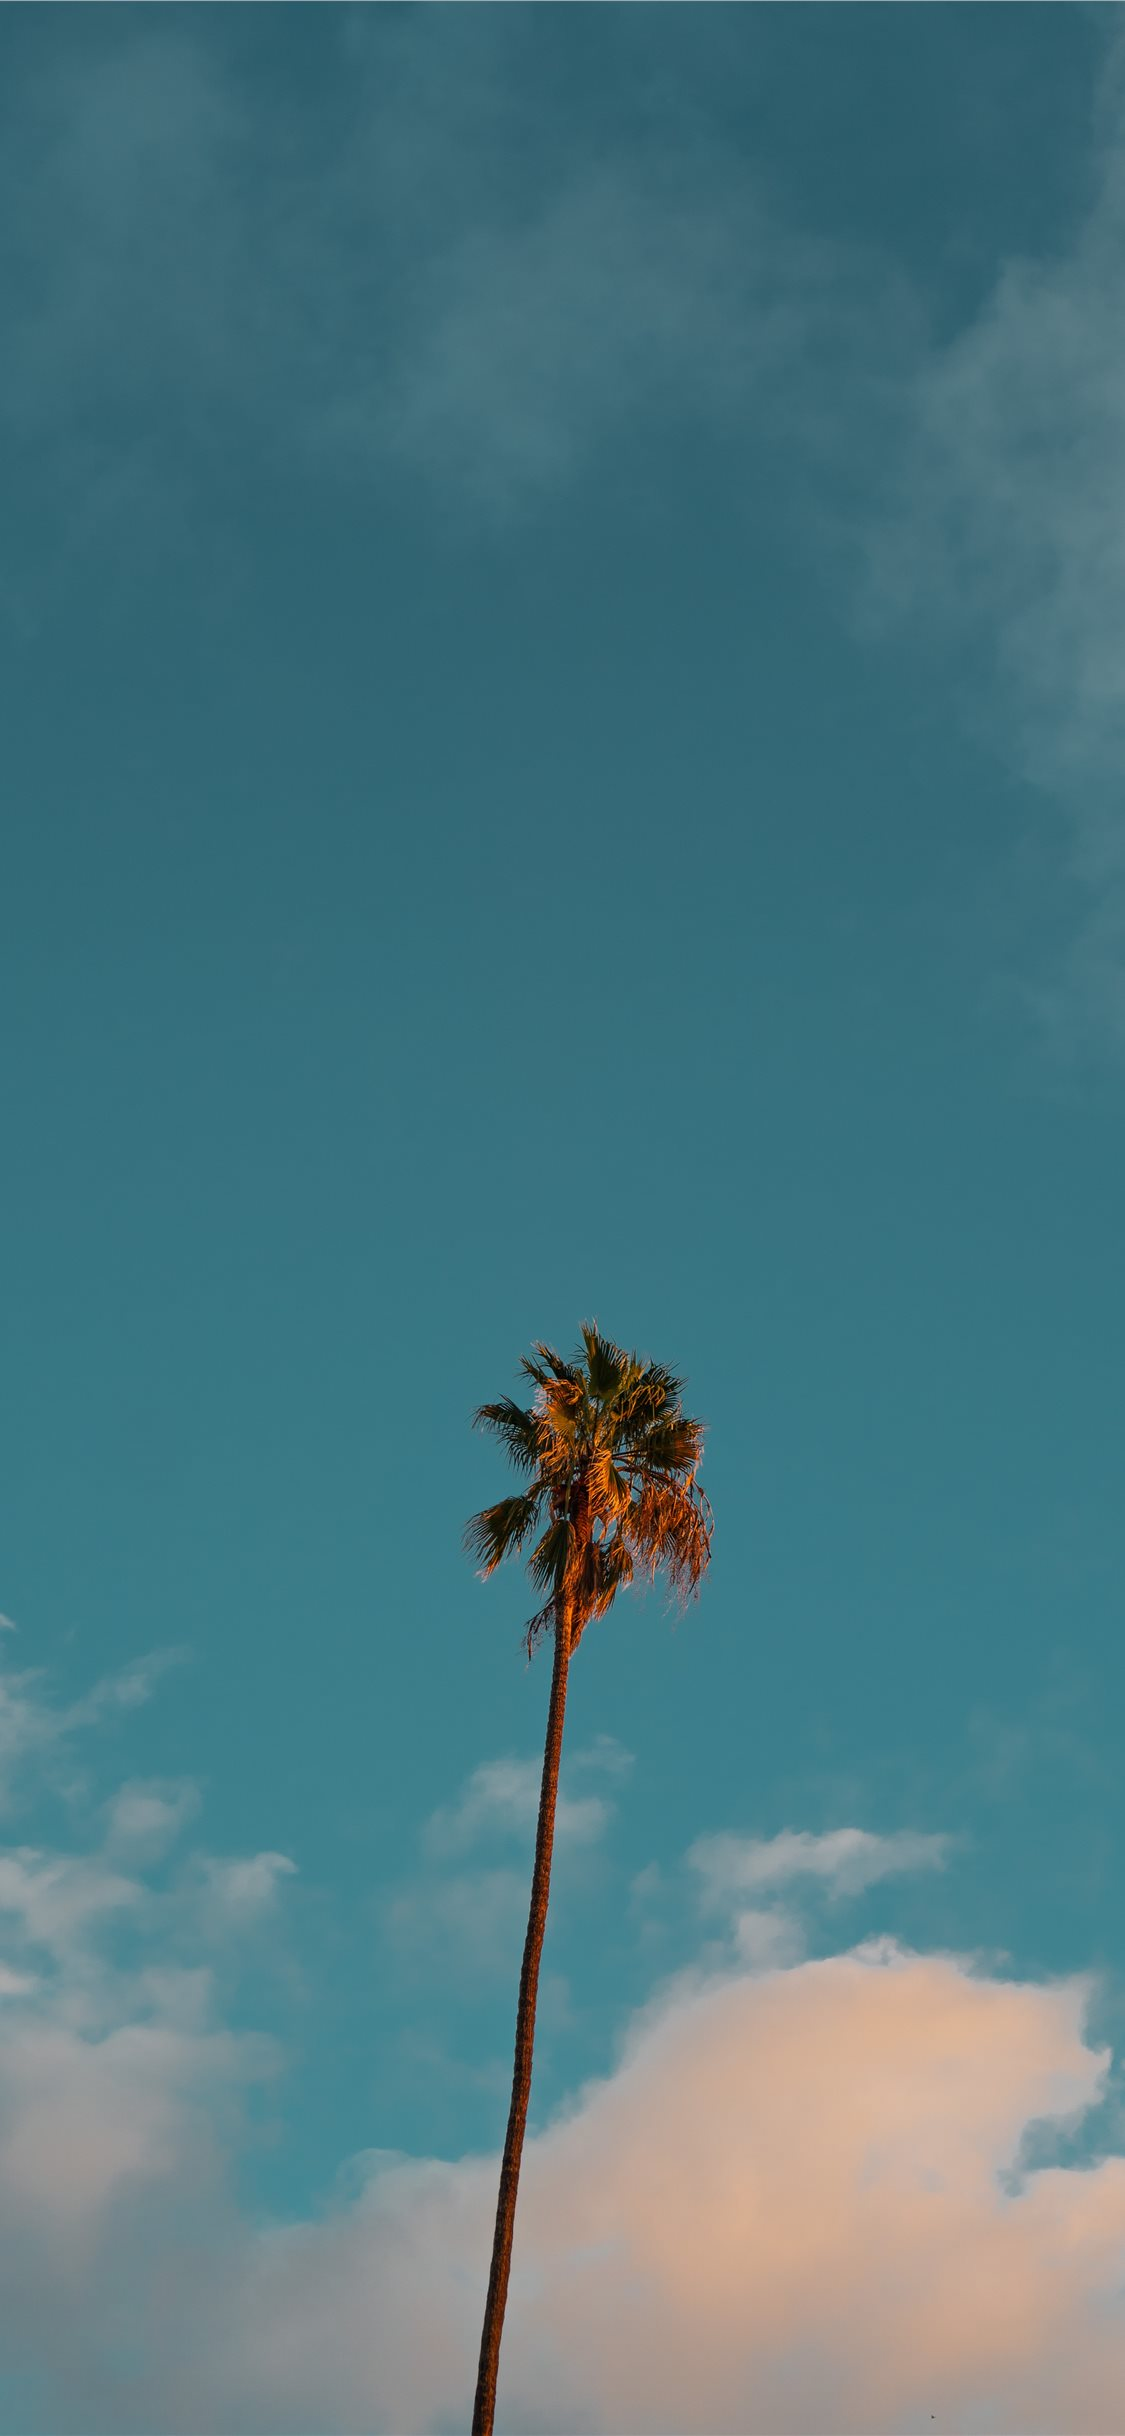 Low Angle Photography Of Palm Tree Under Blue Sky Iphone X